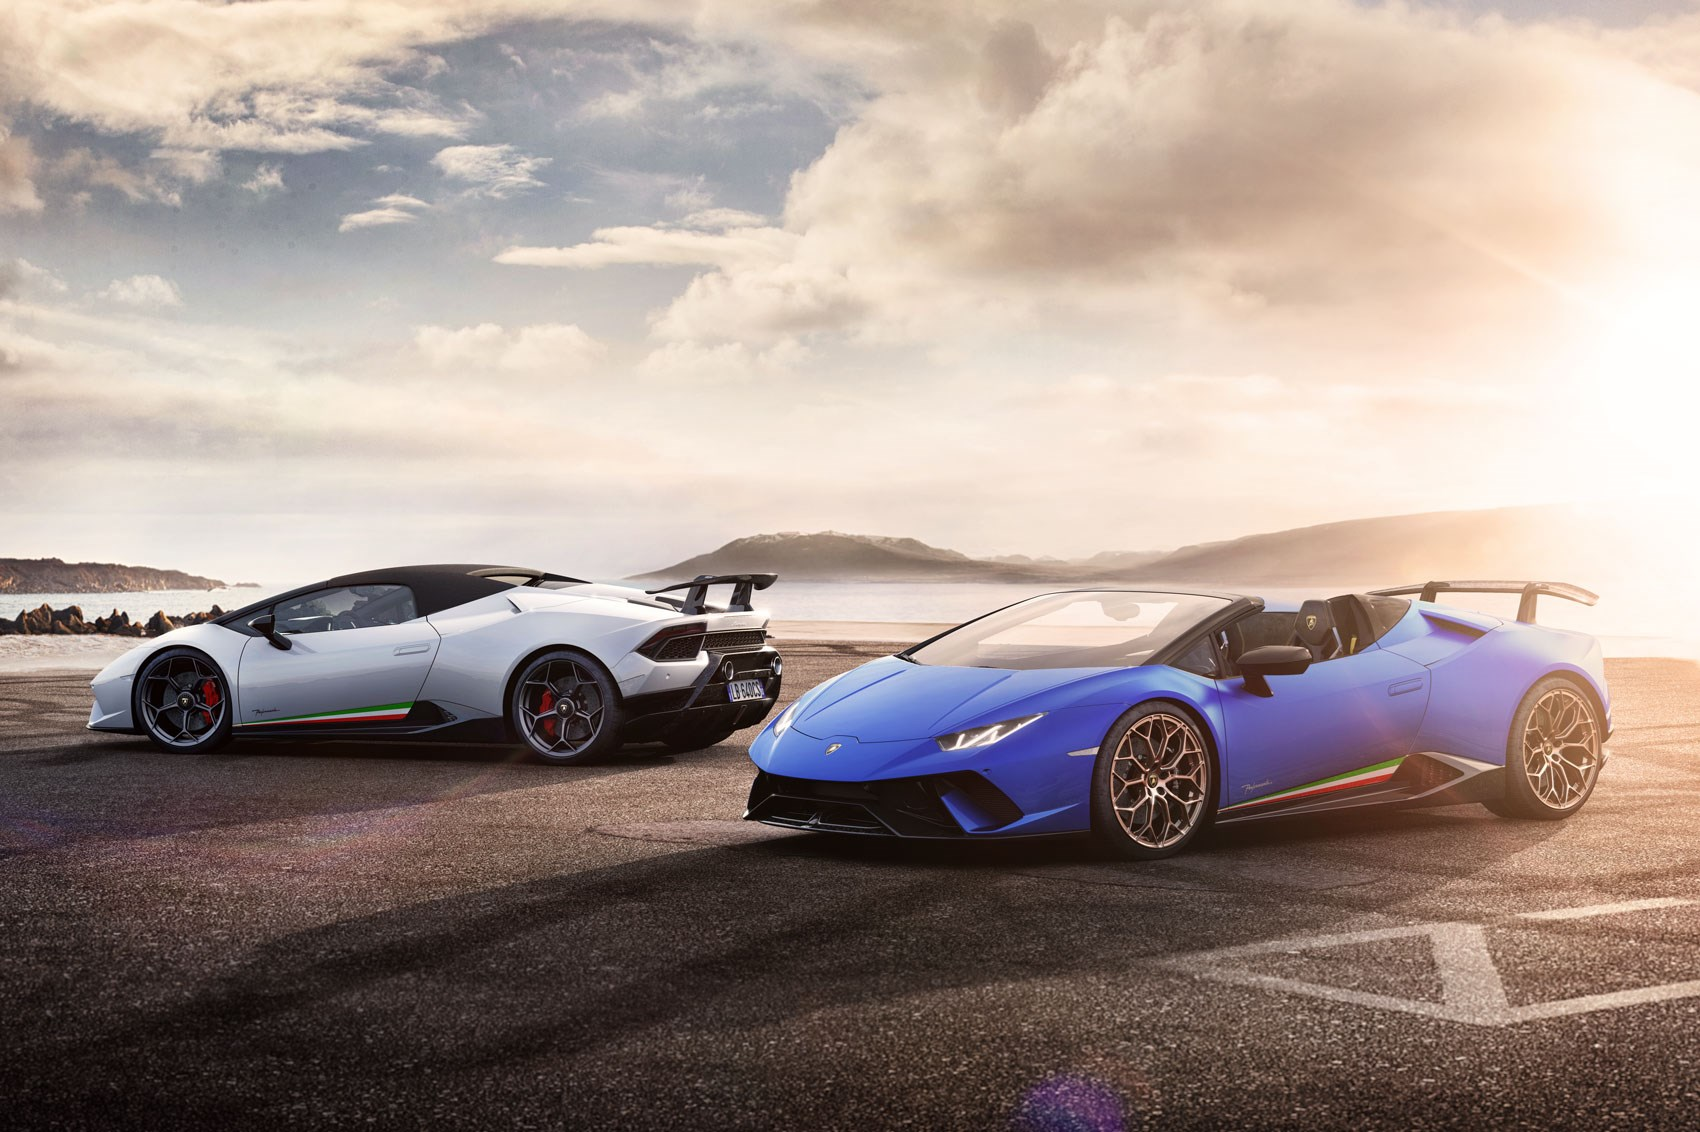 Lamborghini Huracan Performante Spyder showcased at Geneva